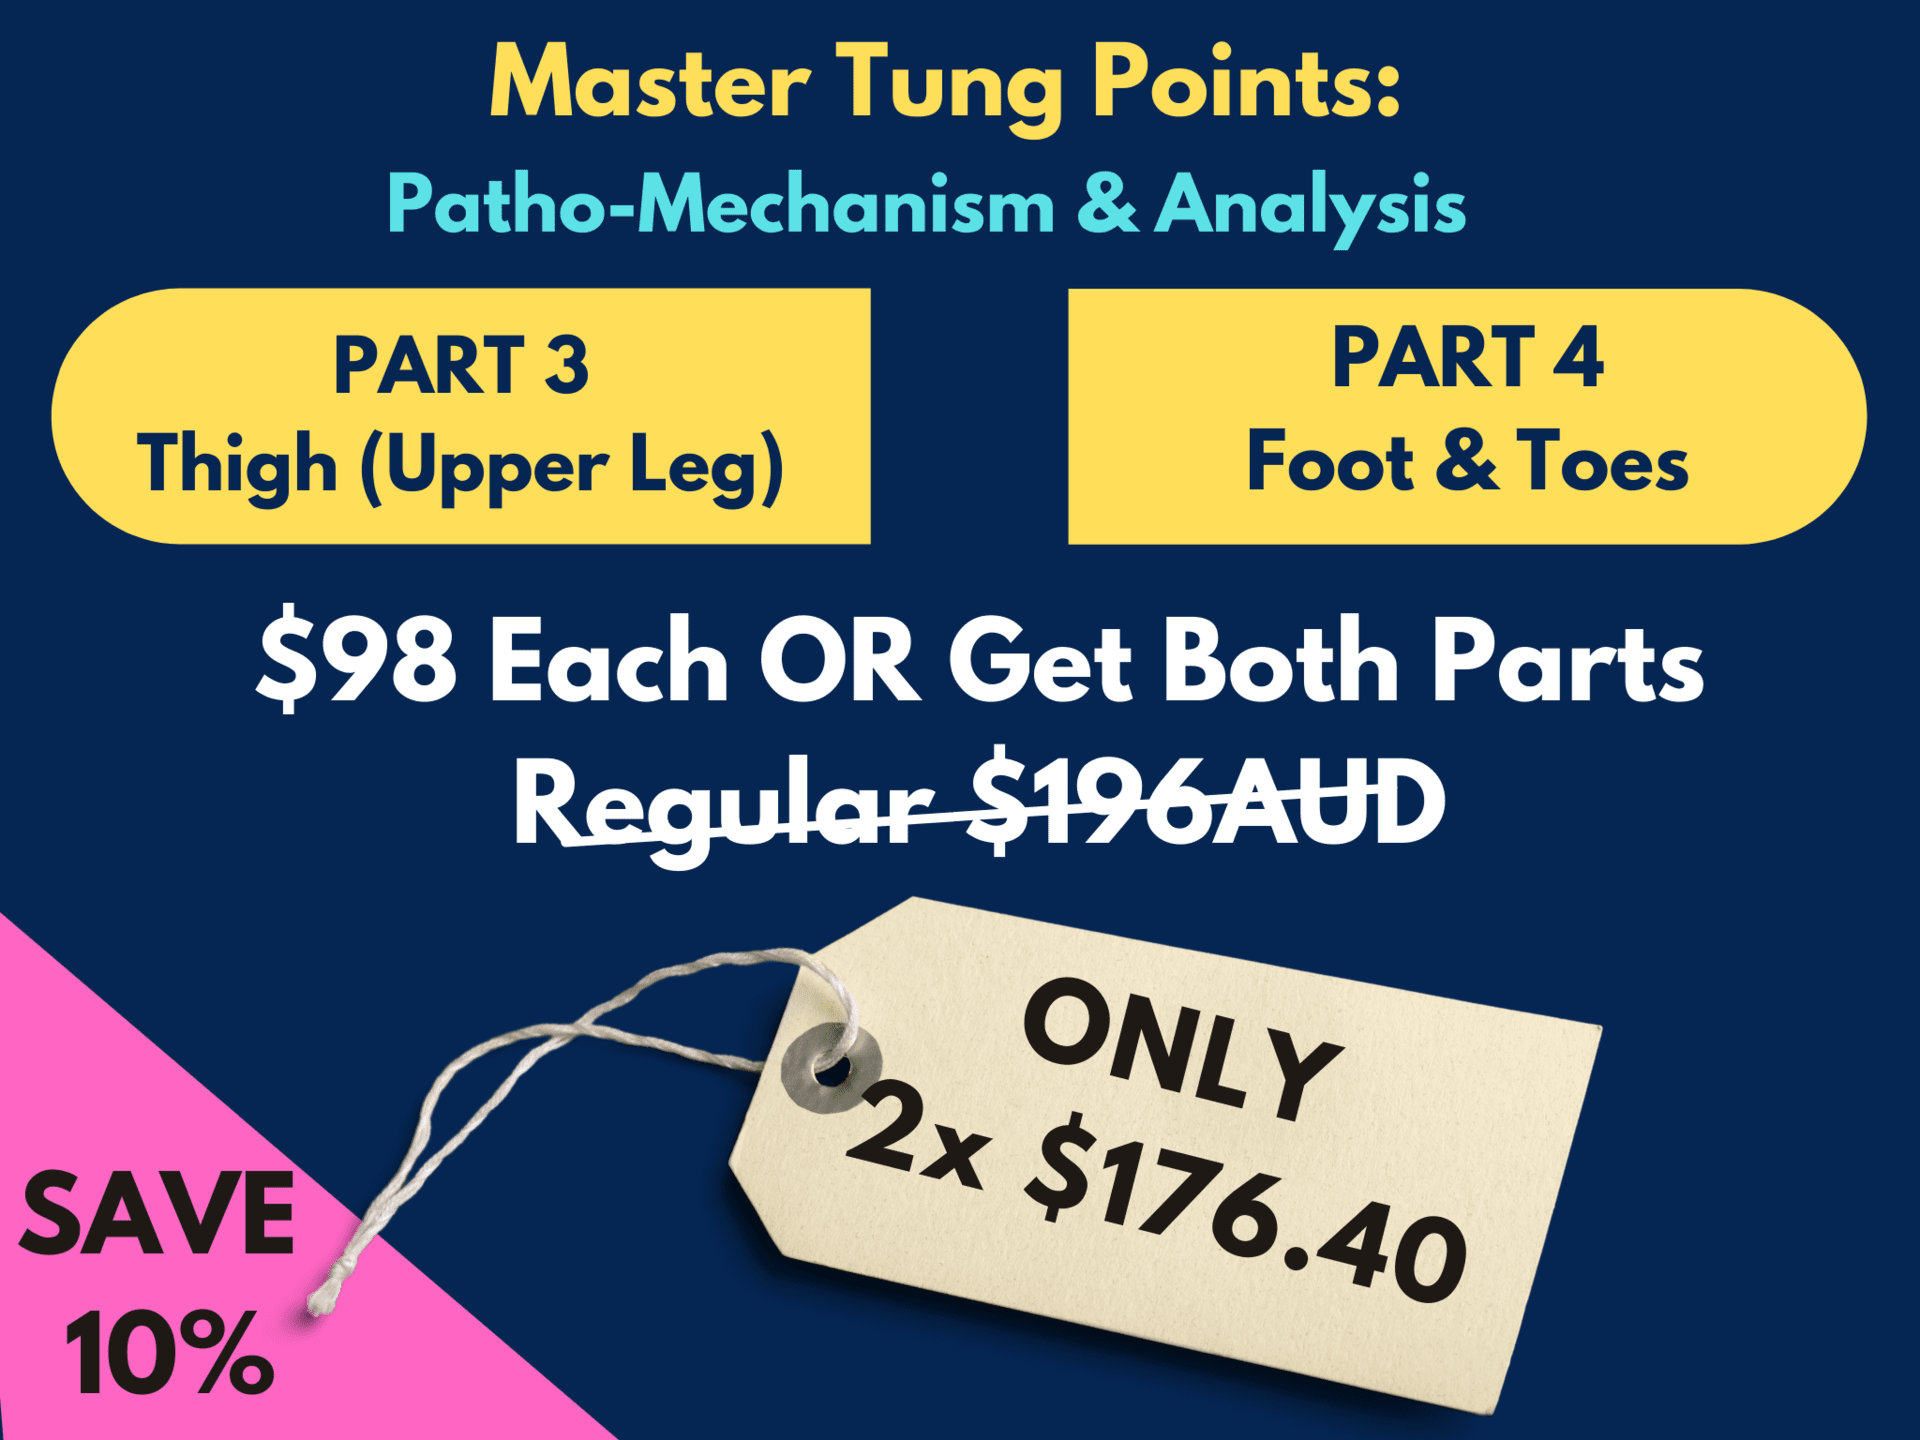 Master Tung Points - 2 Part Series SPECIAL 10% OFF